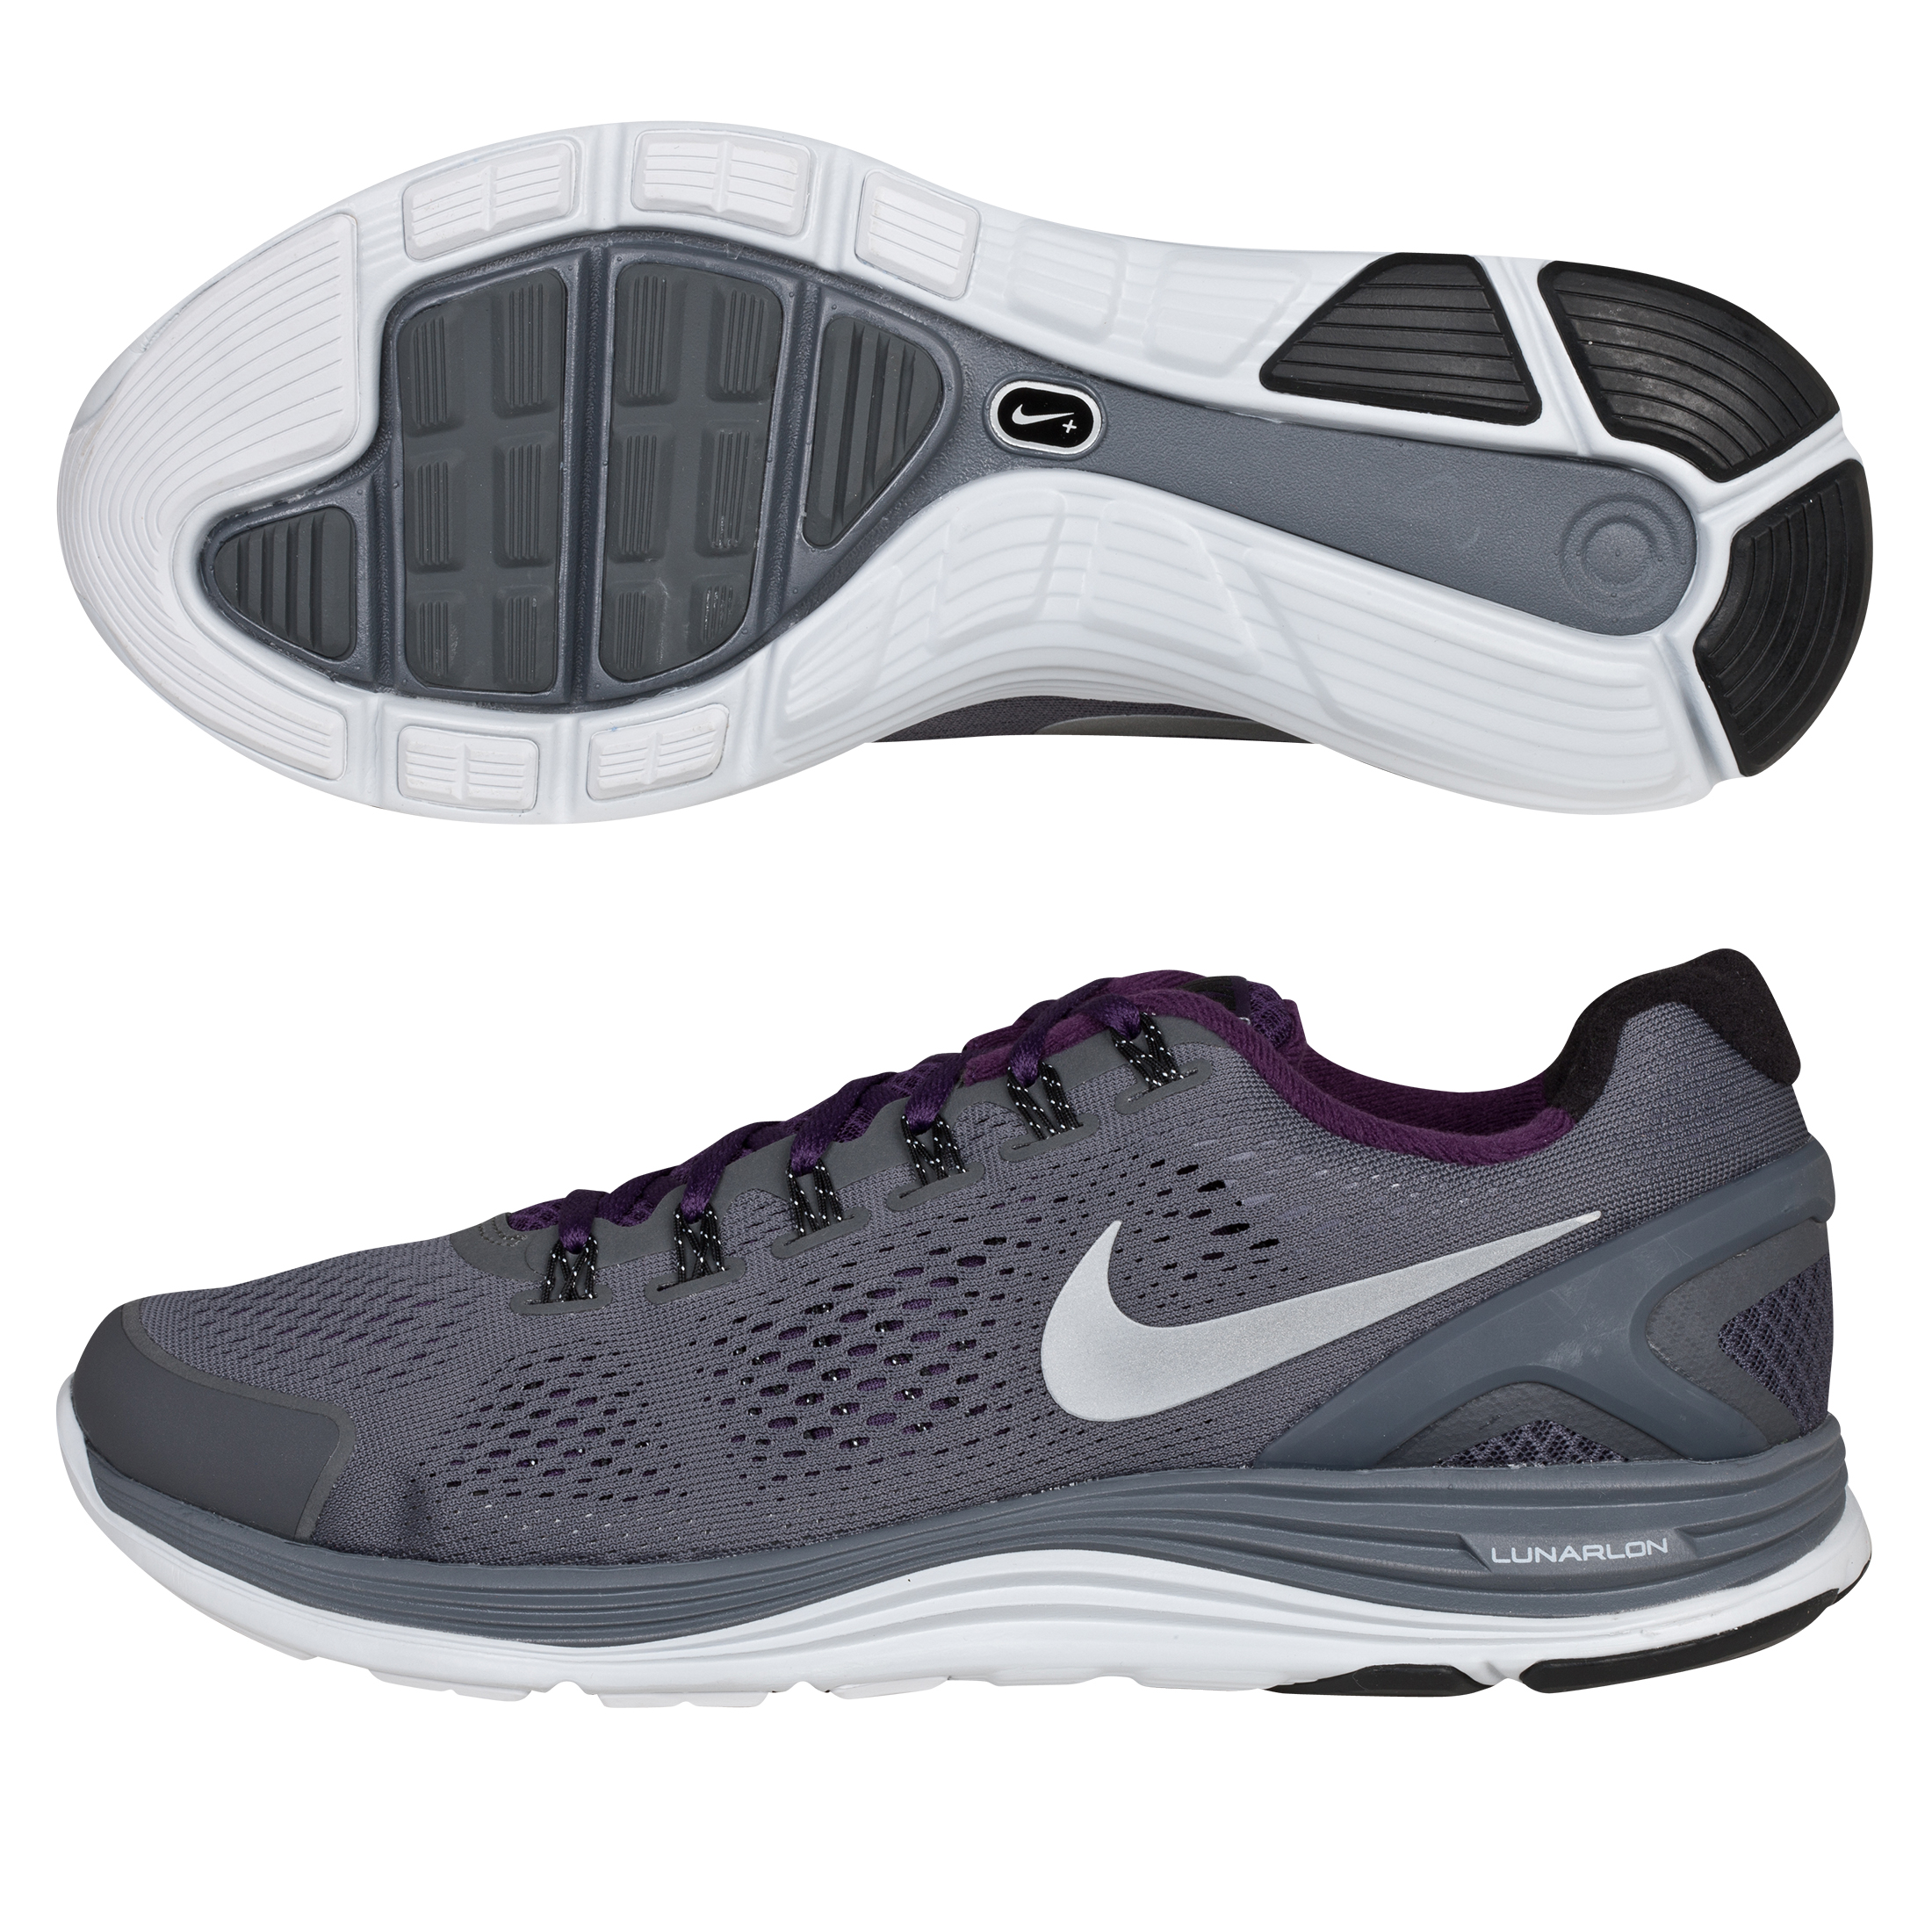 Nike Lunarglide+ 4 Stability Trainer - Dark Grey/Silver